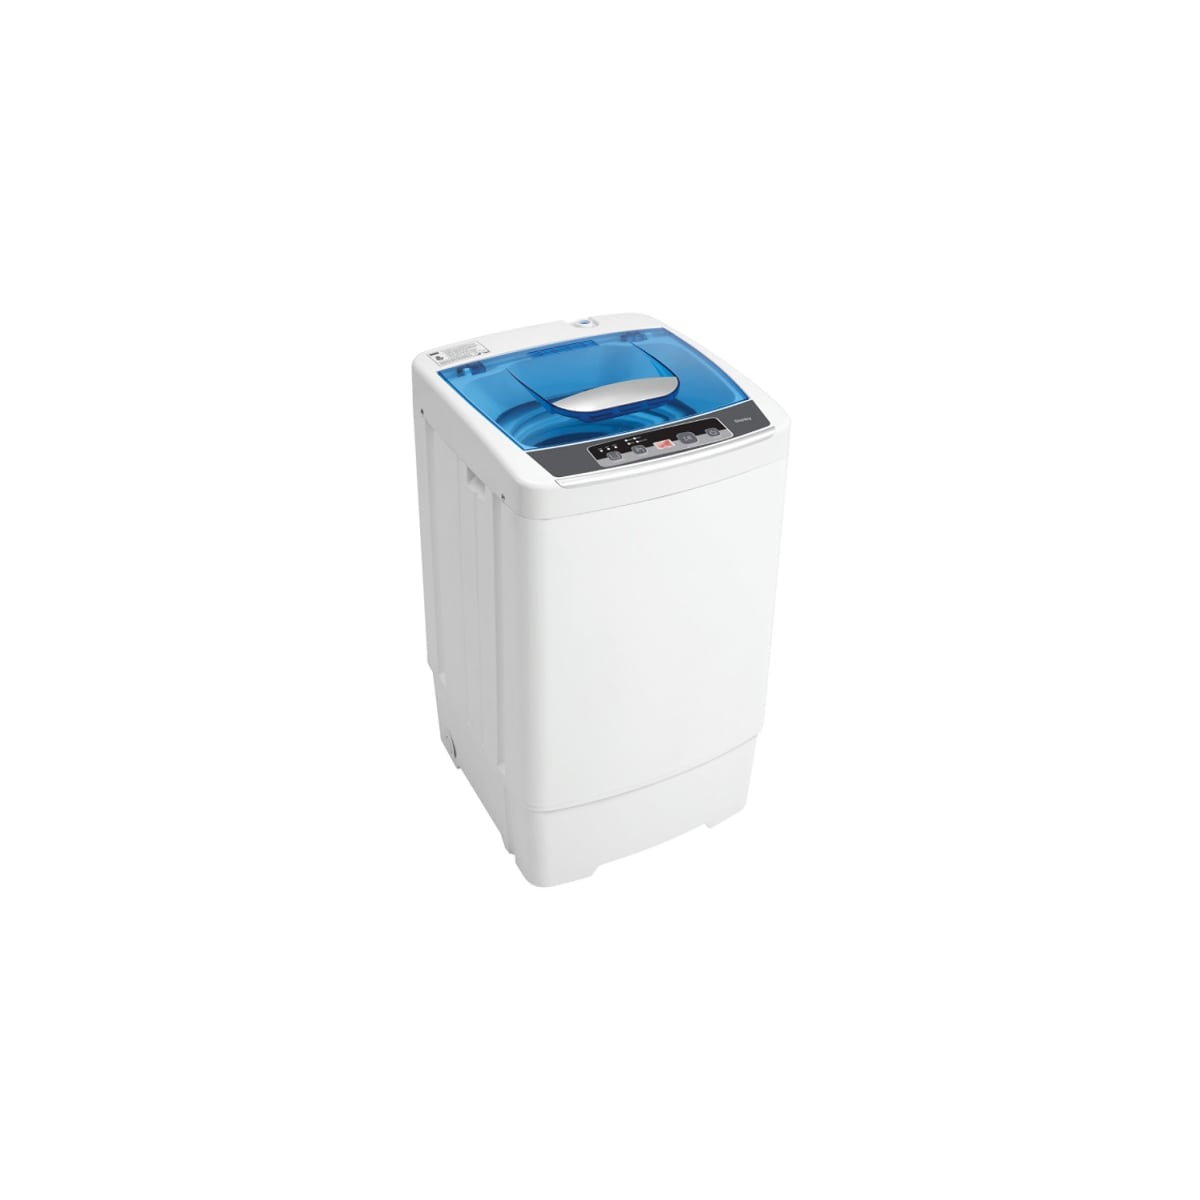 Danby 17 Inch Wide 1 Cu. Ft. Capacity Energy Star Certified Top Loading Washer